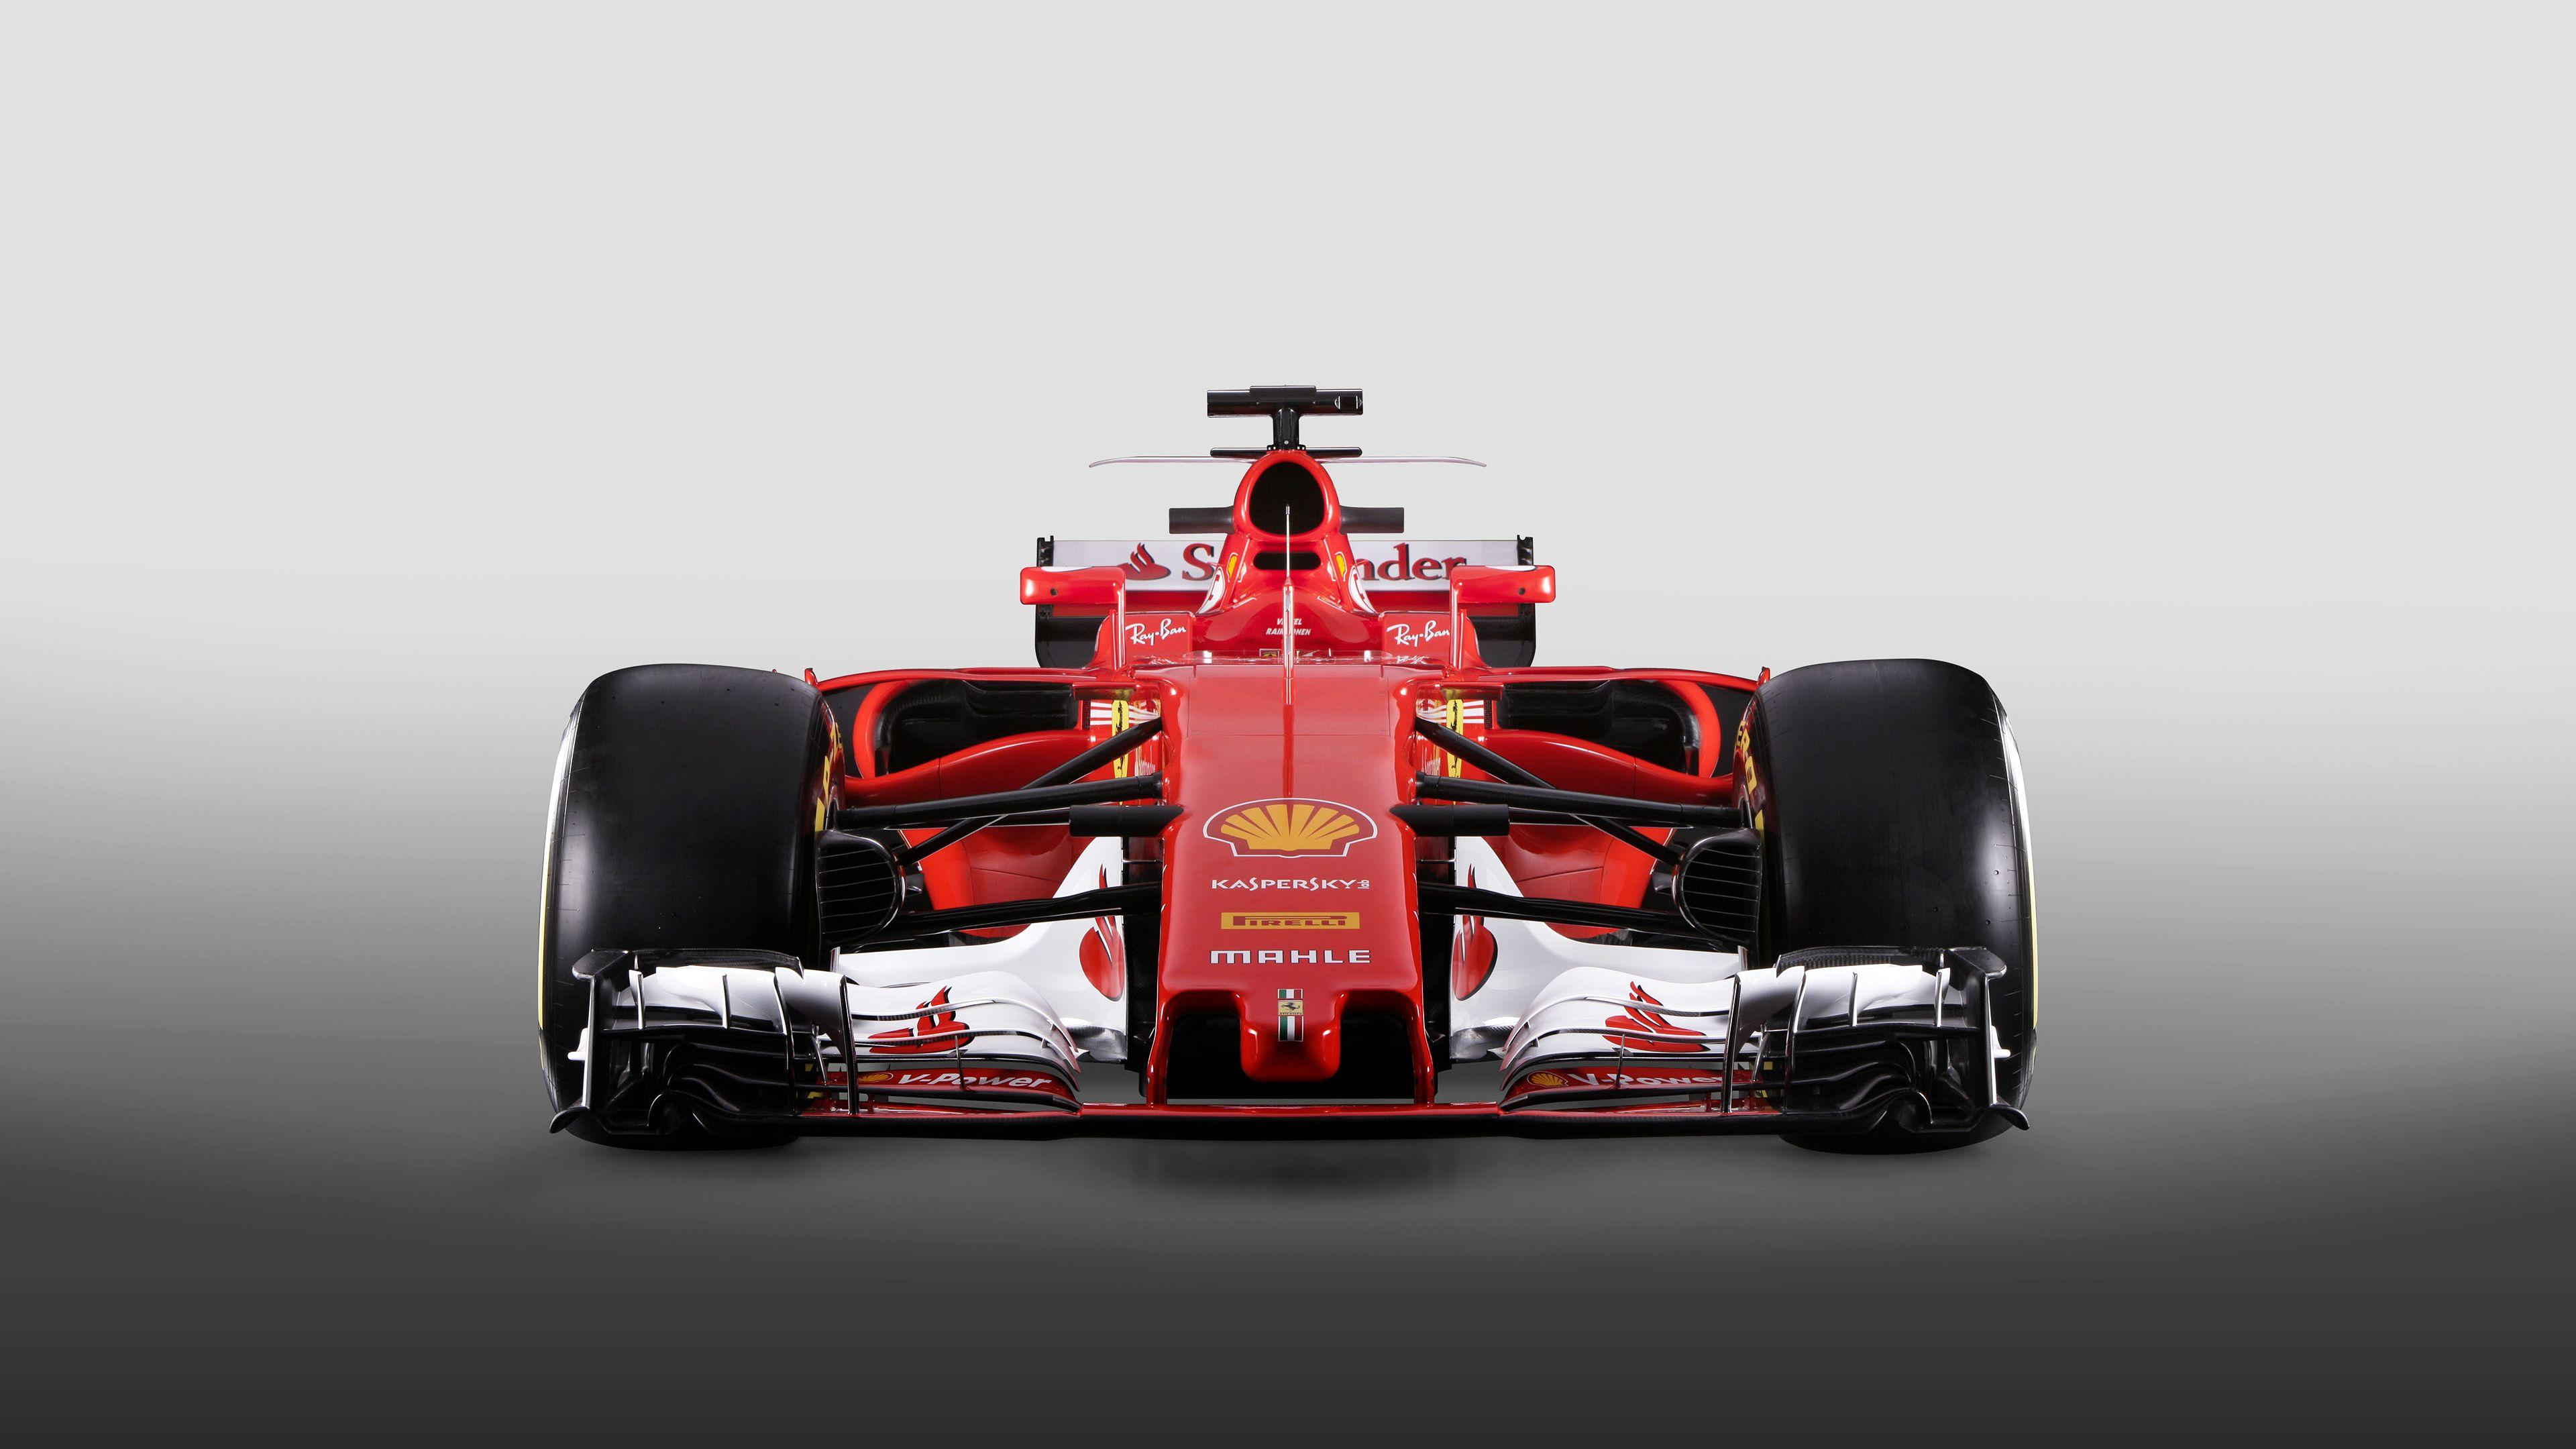 f1 ferrari wallpapers - wallpaper cave